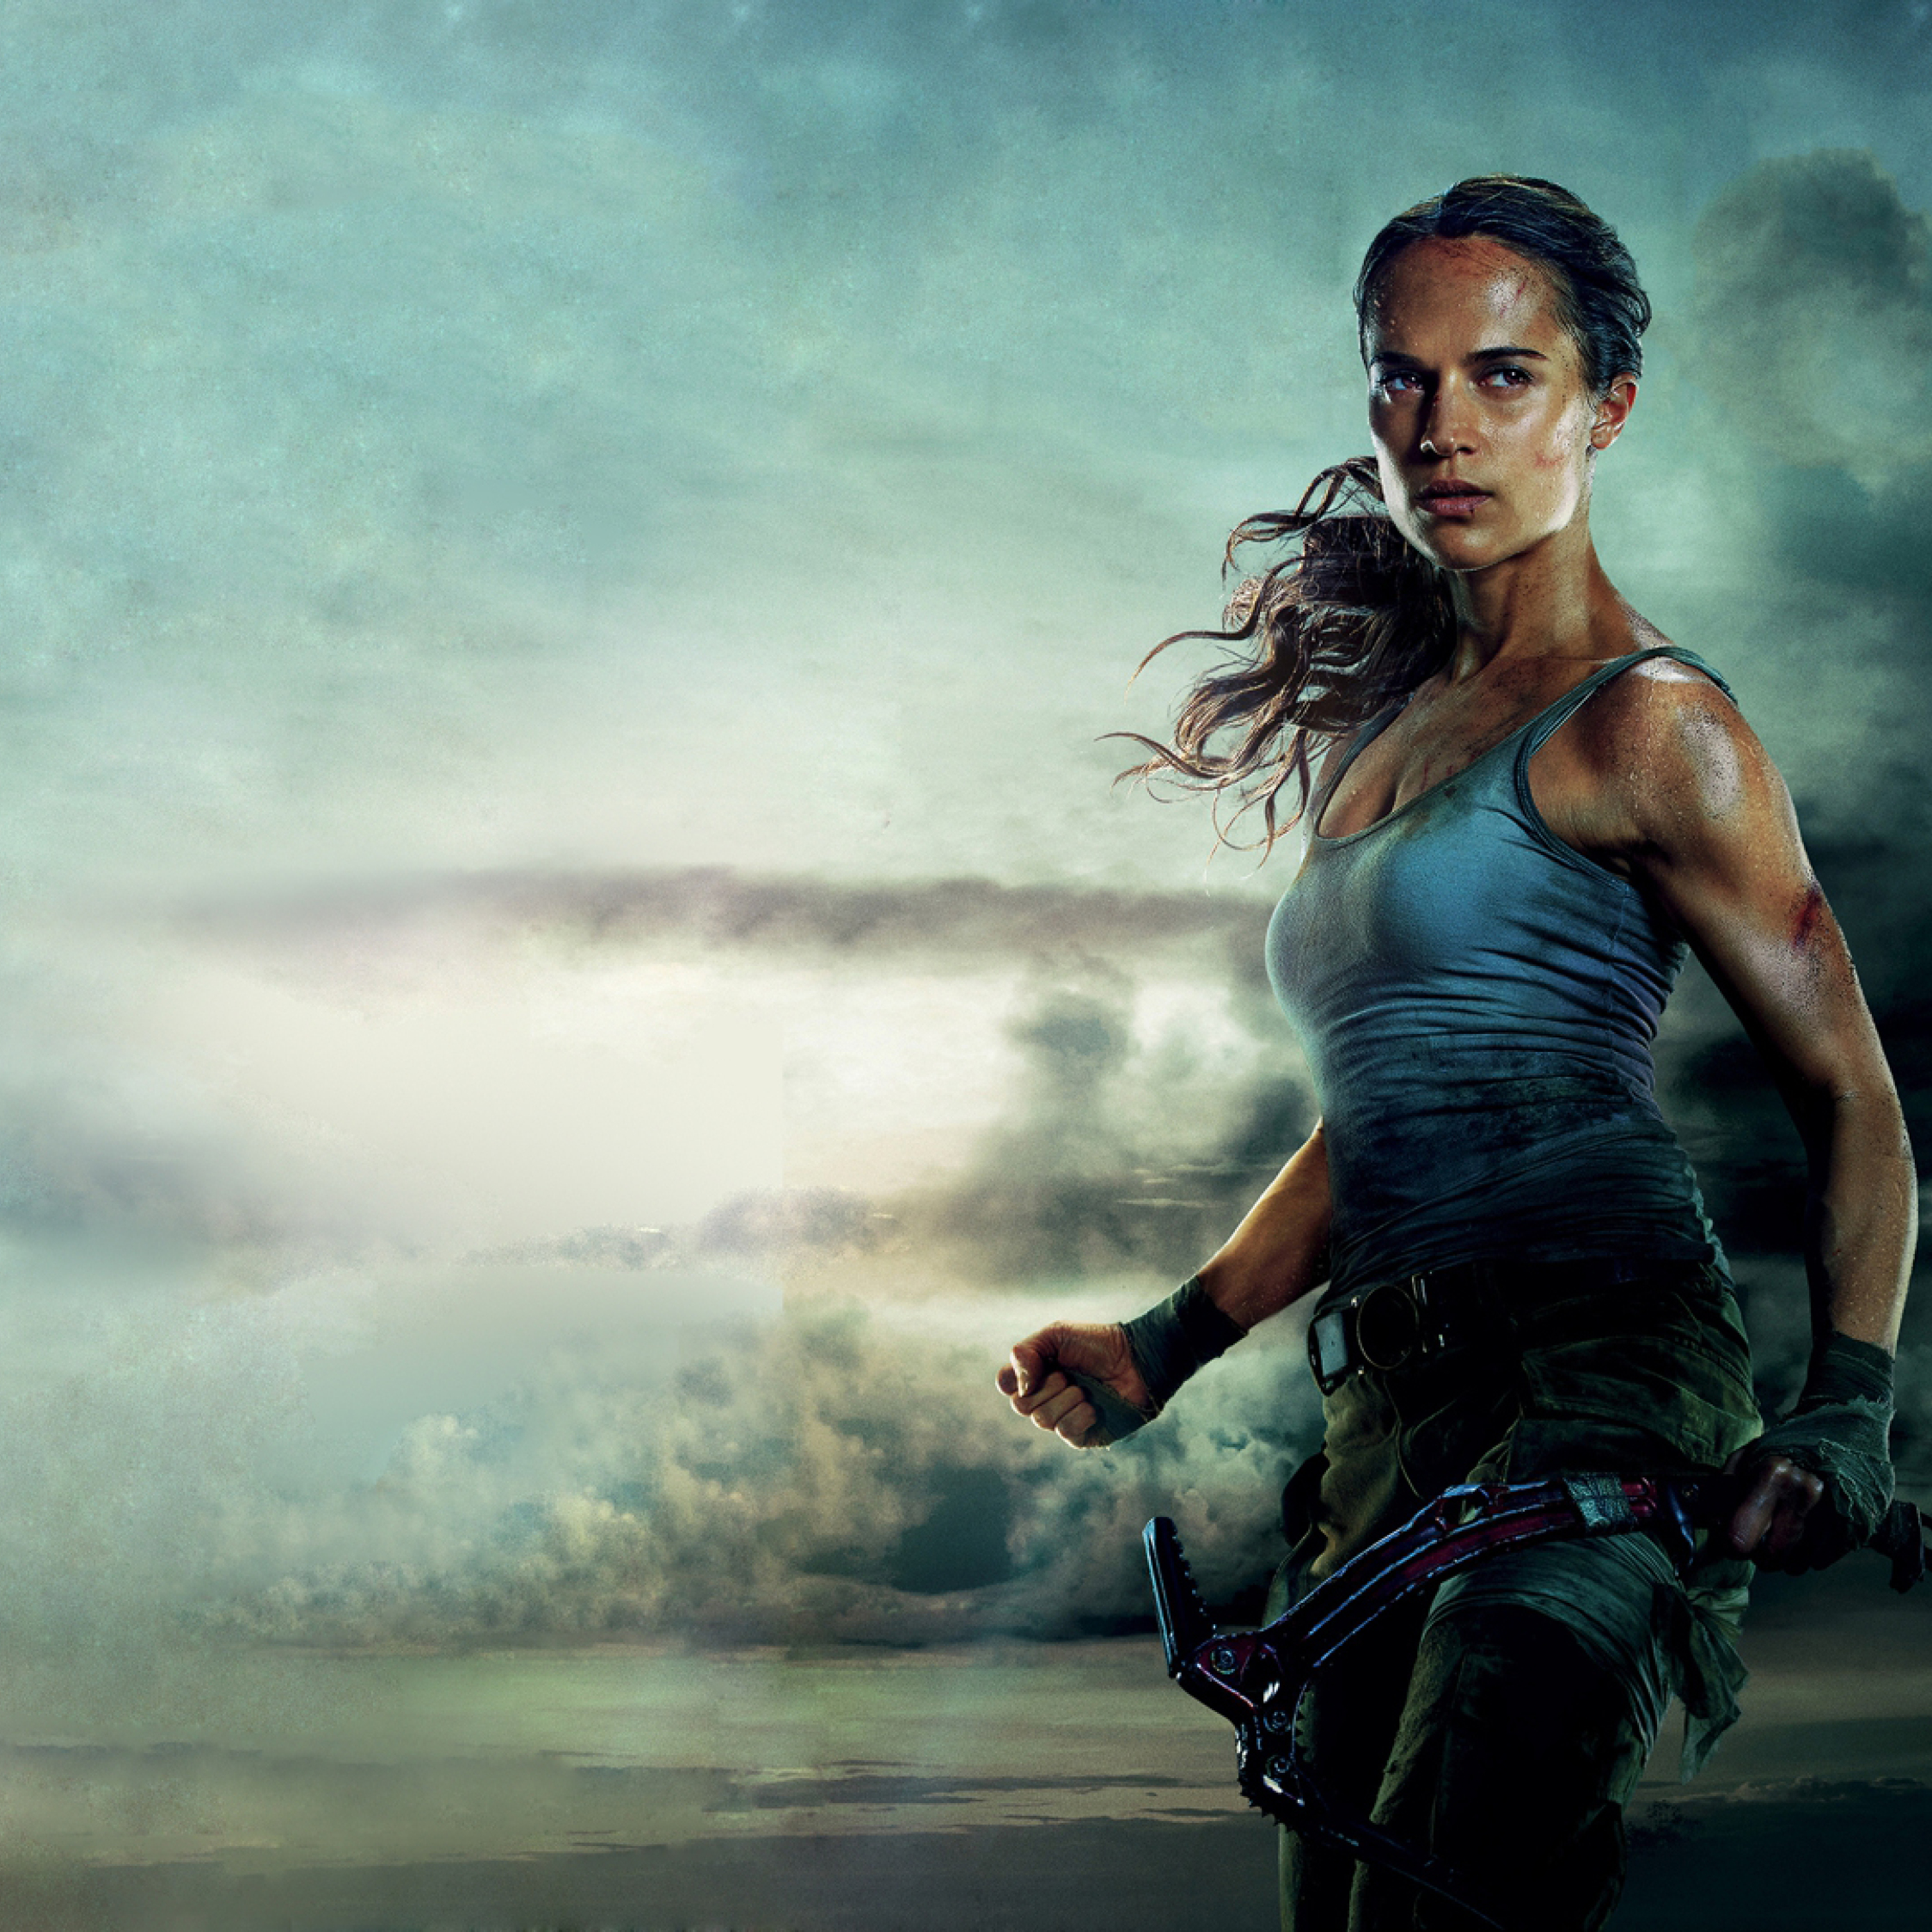 Tomb Rider Wallpaper: Alicia Vikander Tomb Raider 2018 Movie, Full HD Wallpaper